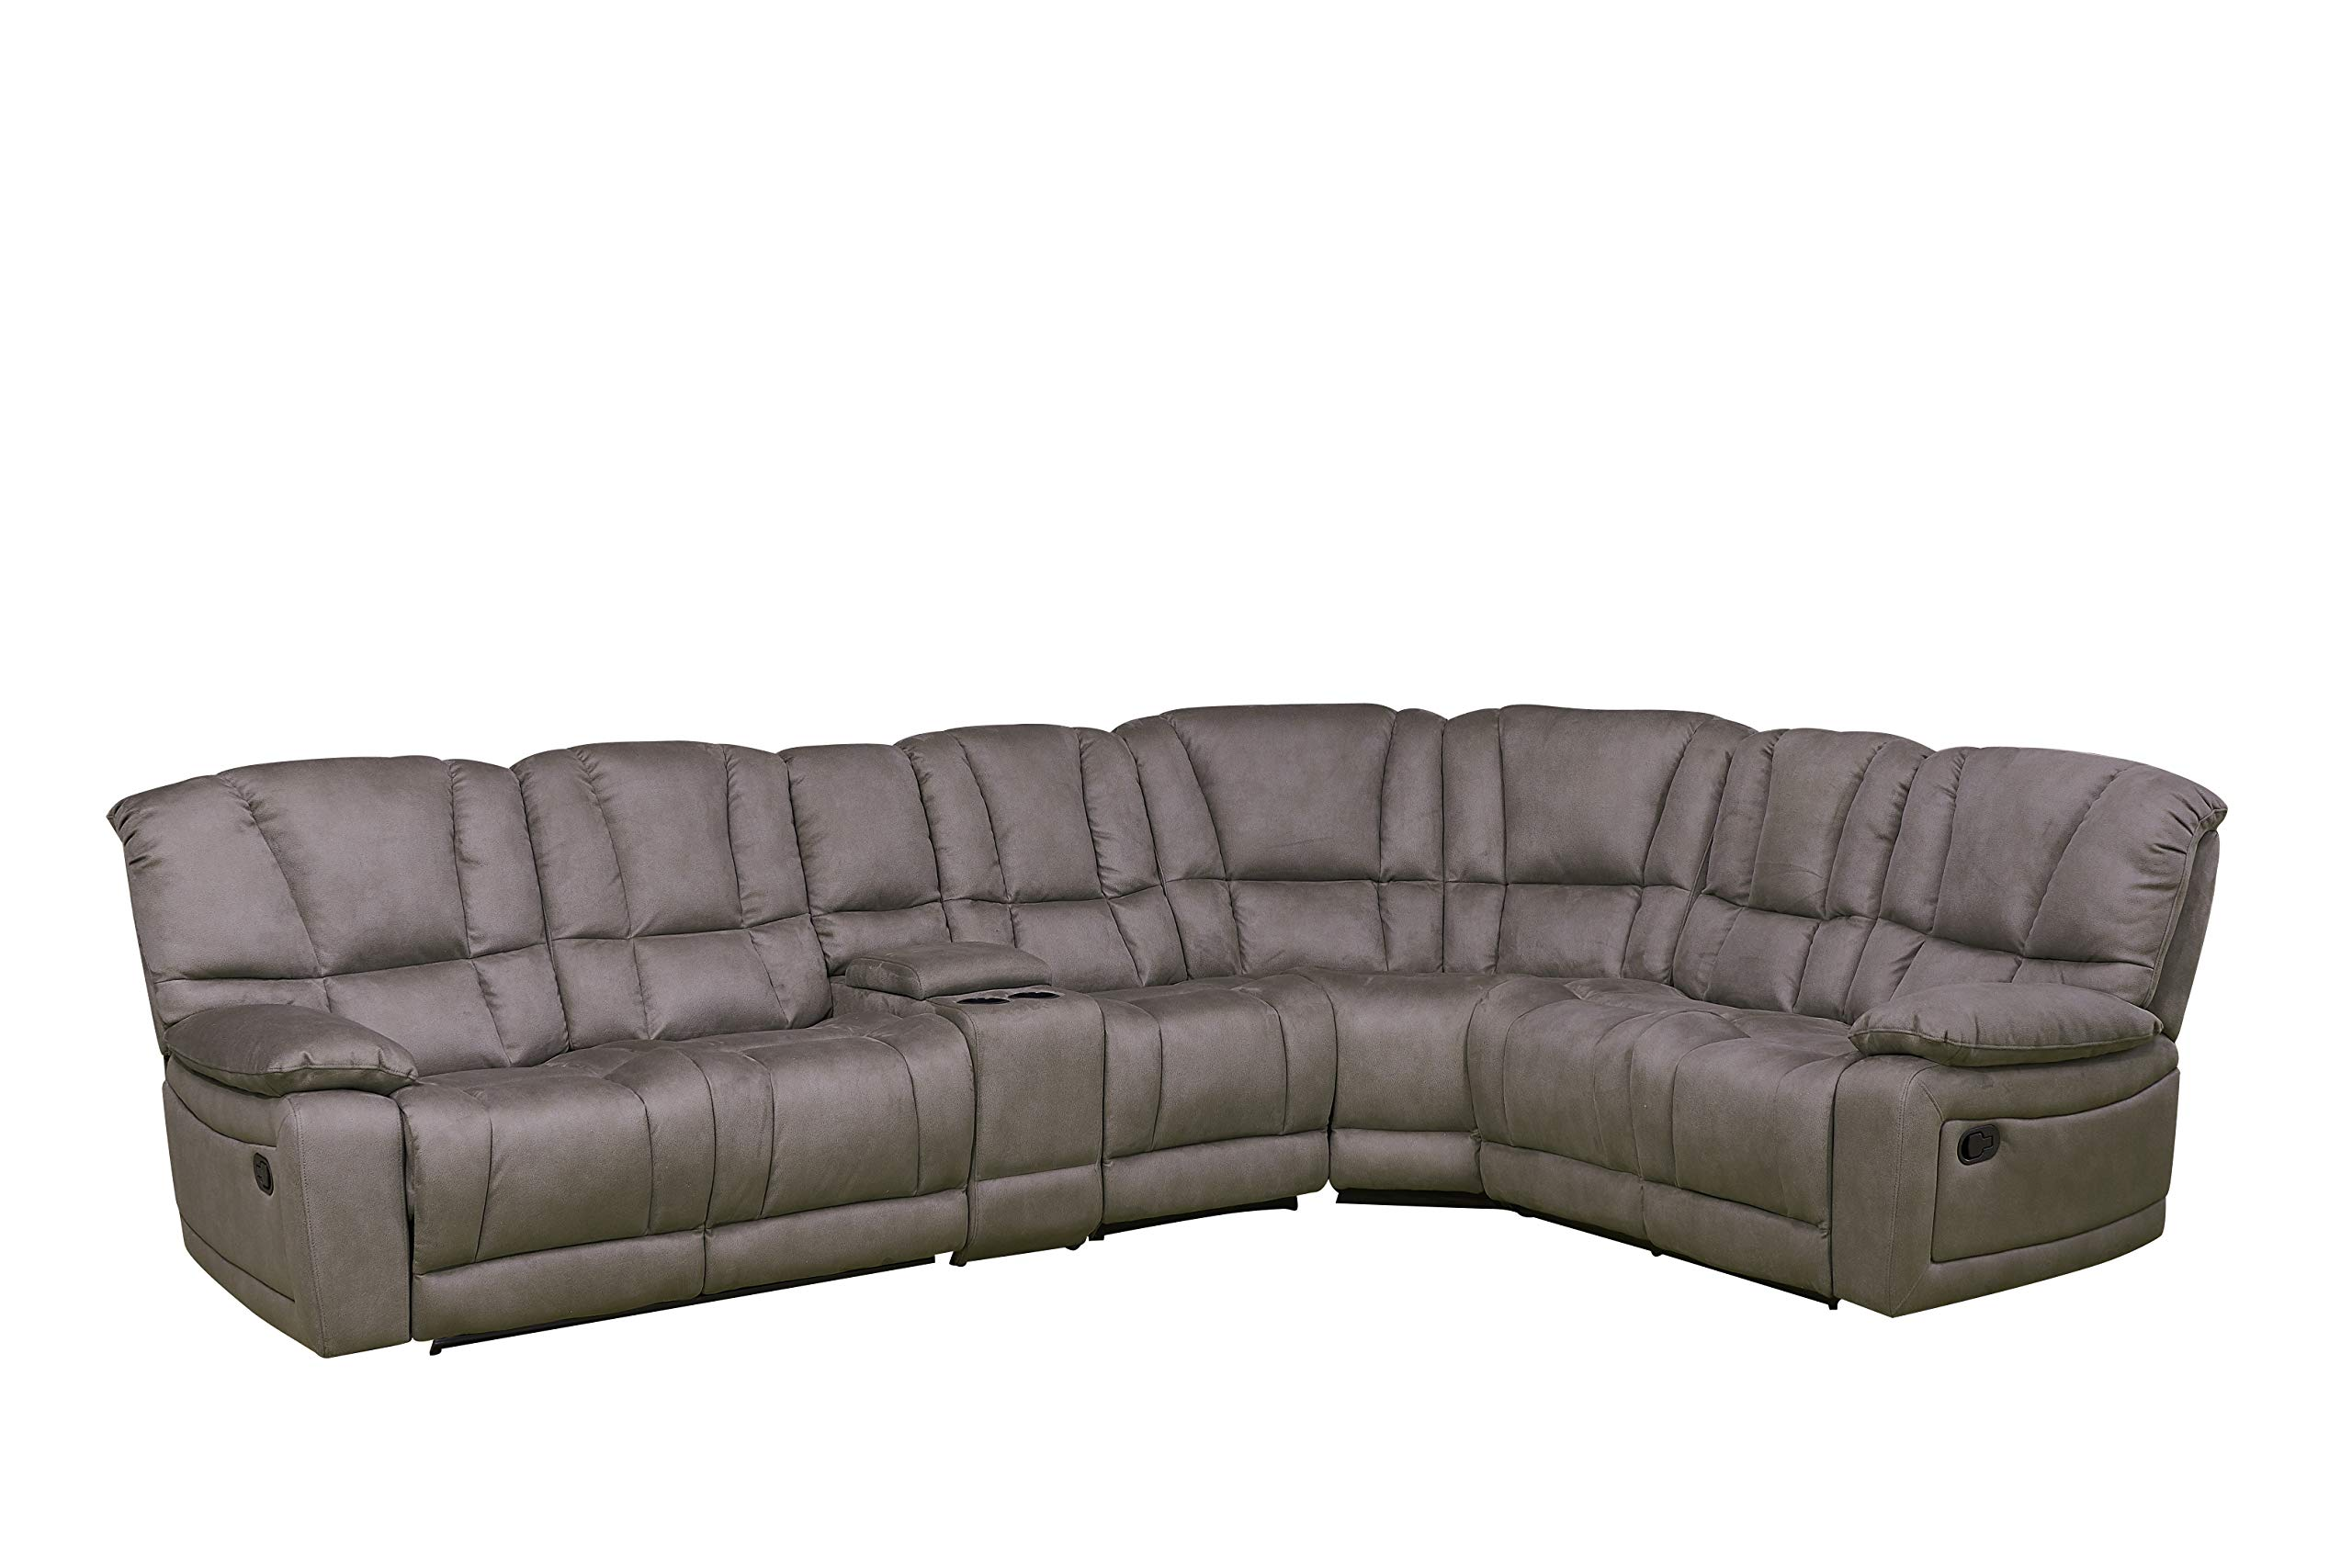 Betsy Furniture Large Microfiber Reclining Sectional Living Room Sofa in Grey 8019 by Betsy Furniture